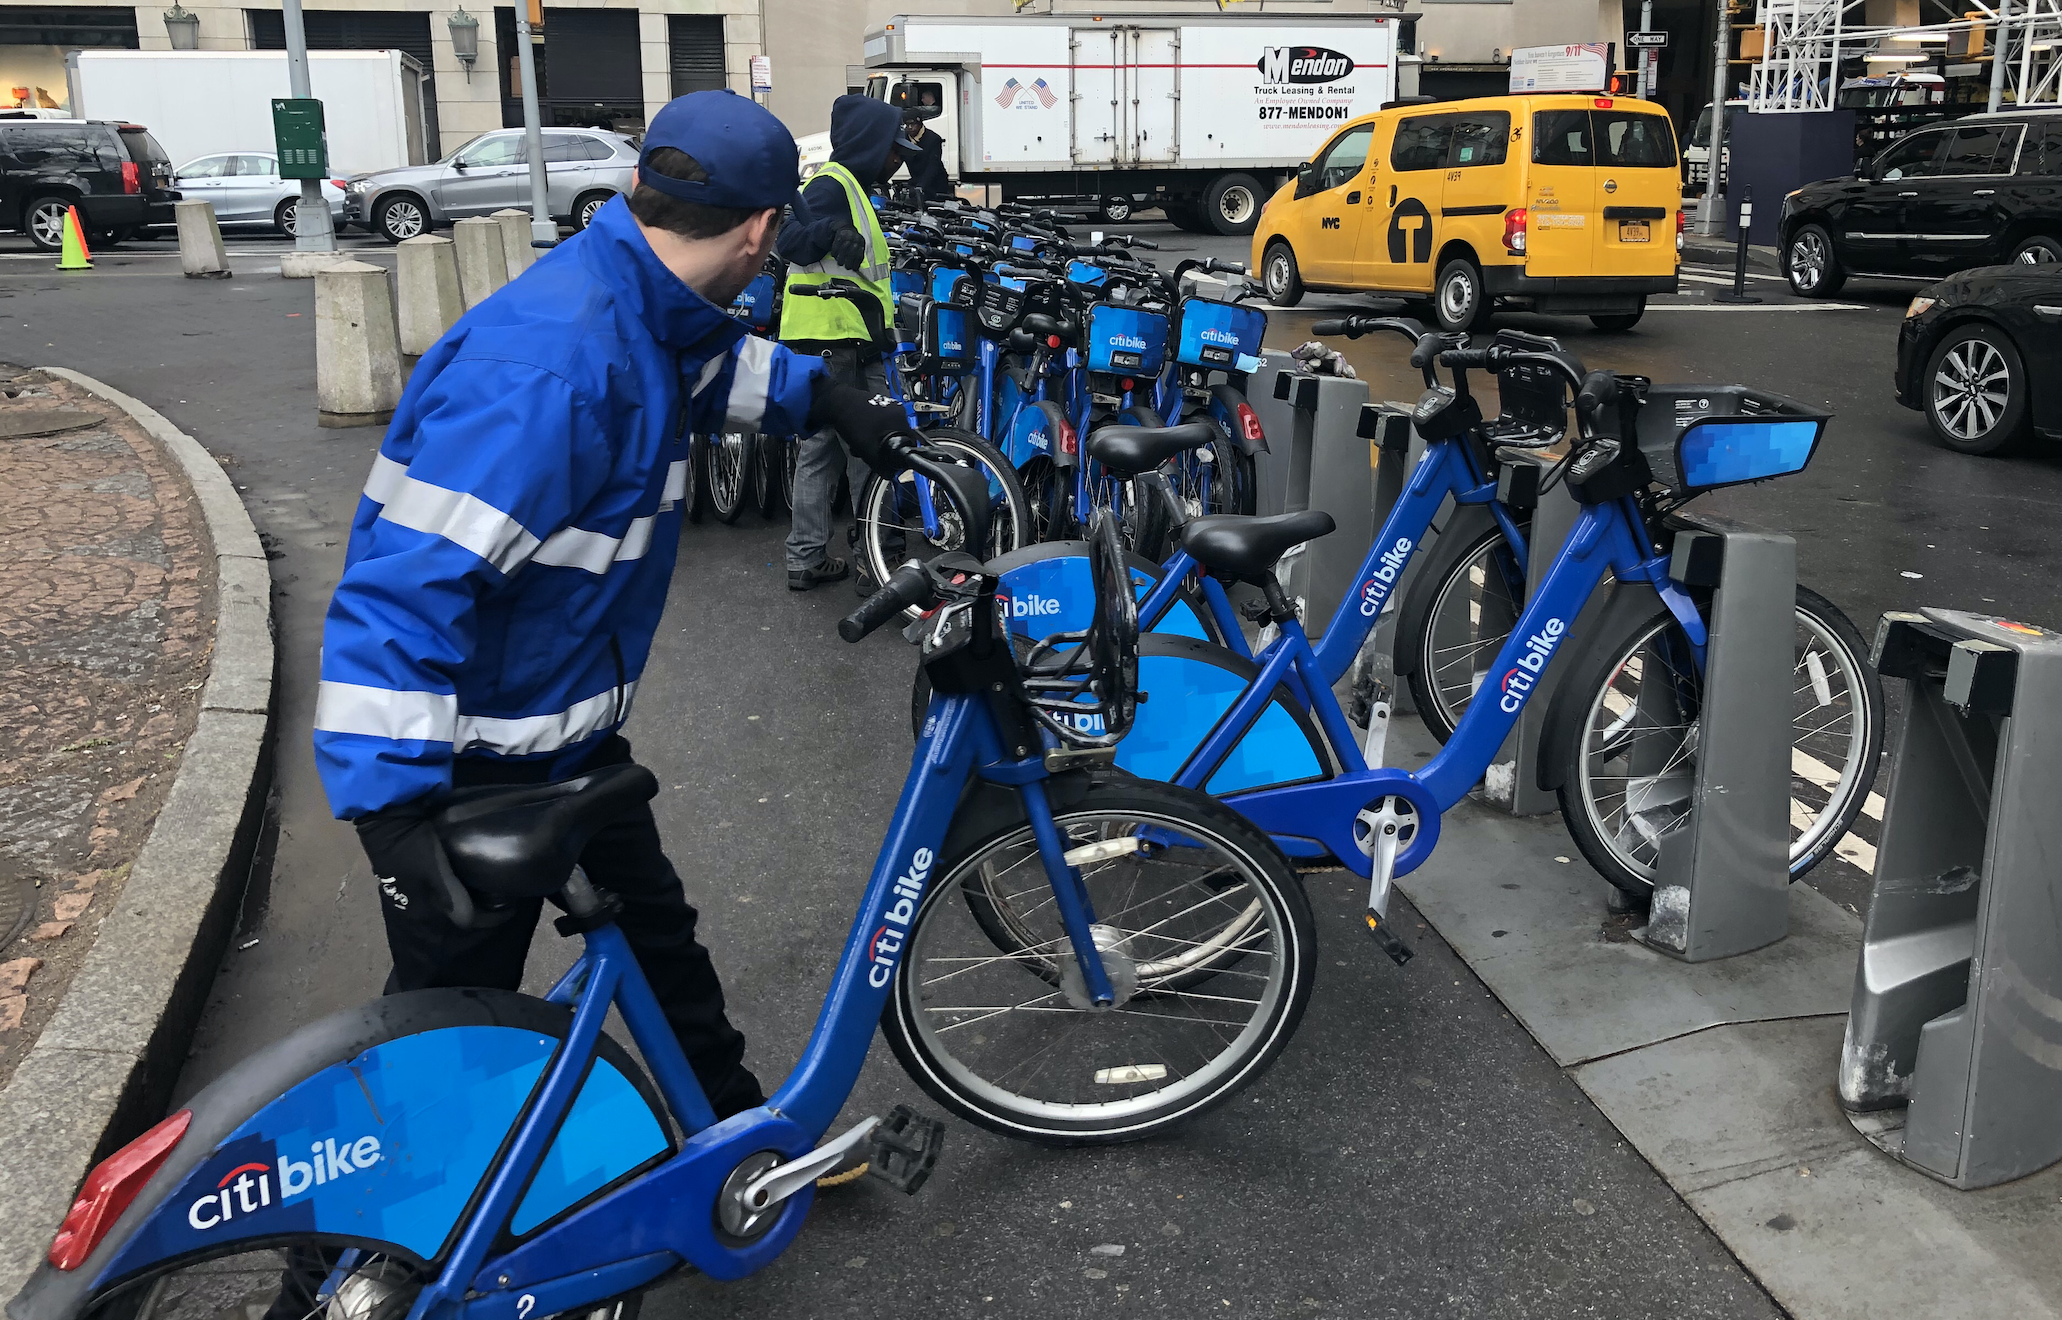 Locate the Citi Bike valet stations | Citi Bike NYC on hubway map, nyc train map, bronx zip code map, proof of success map, nyc school district map, nyc bus map,